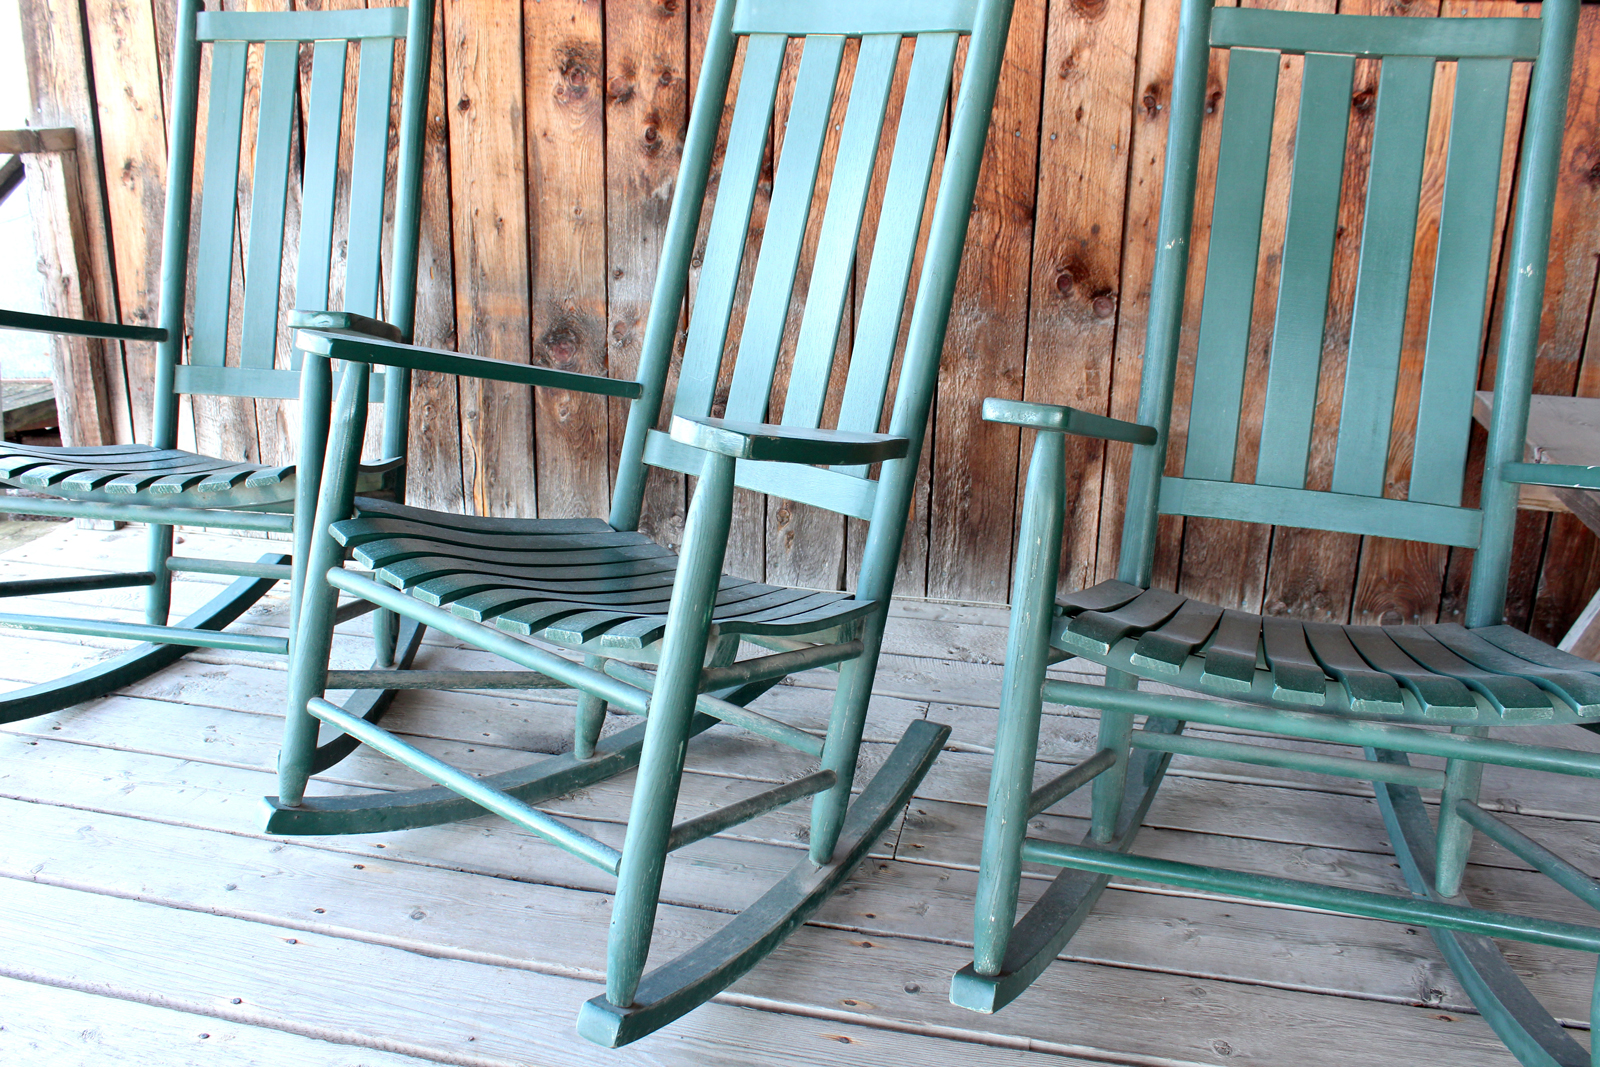 Turquoise Rocking Chairs  Design Thought:  Re-fashion old rocking chairs by painting them a new color.  Save a tree.